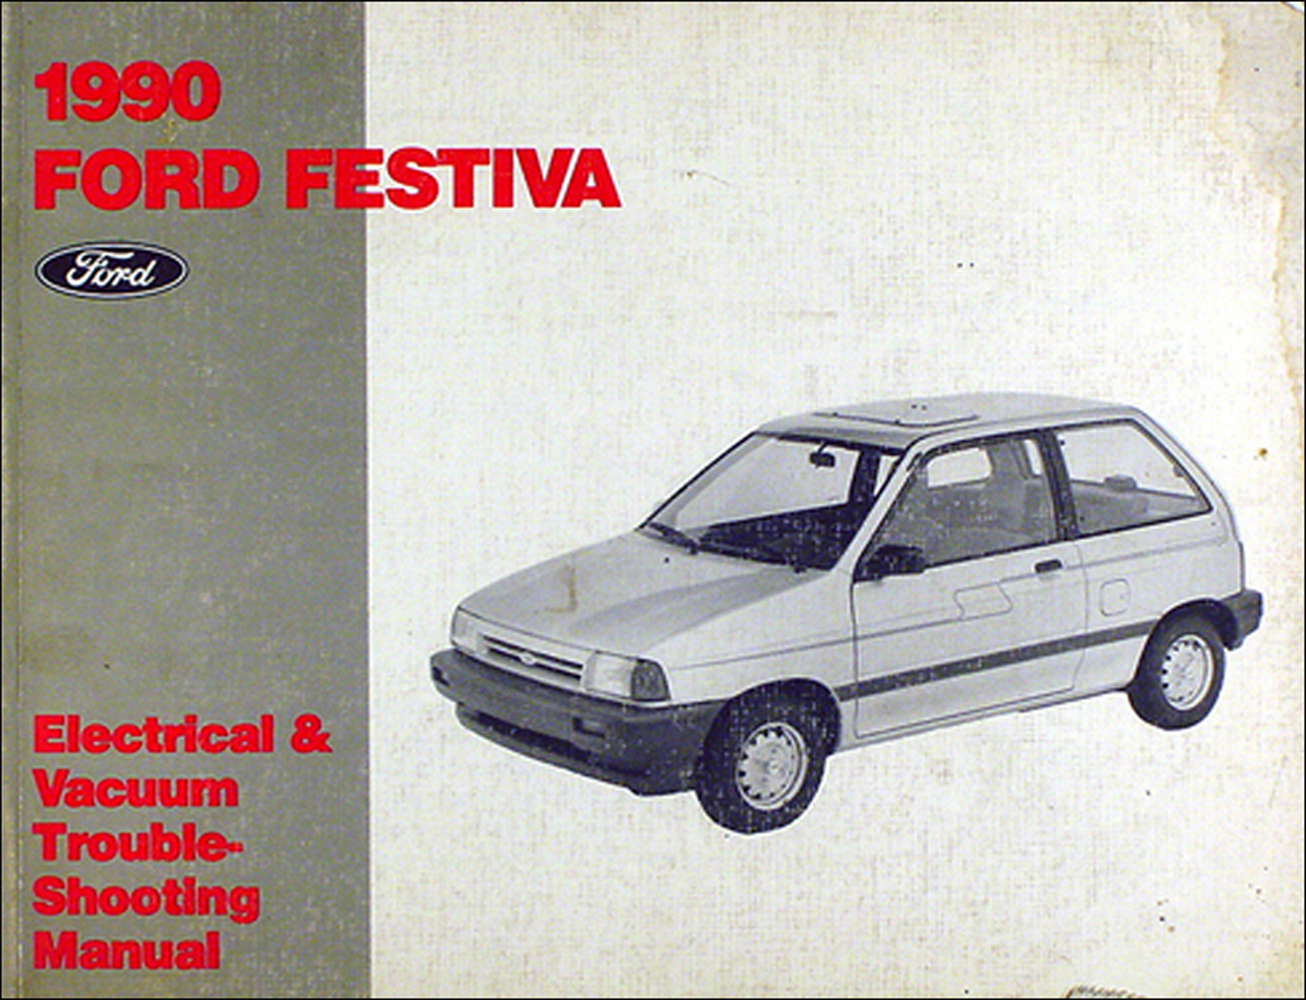 Ford Festiva Ignition Wiring Diagram Library For 1988 1990 Foldout Original Rh Faxonautoliterature Com Specs Red And